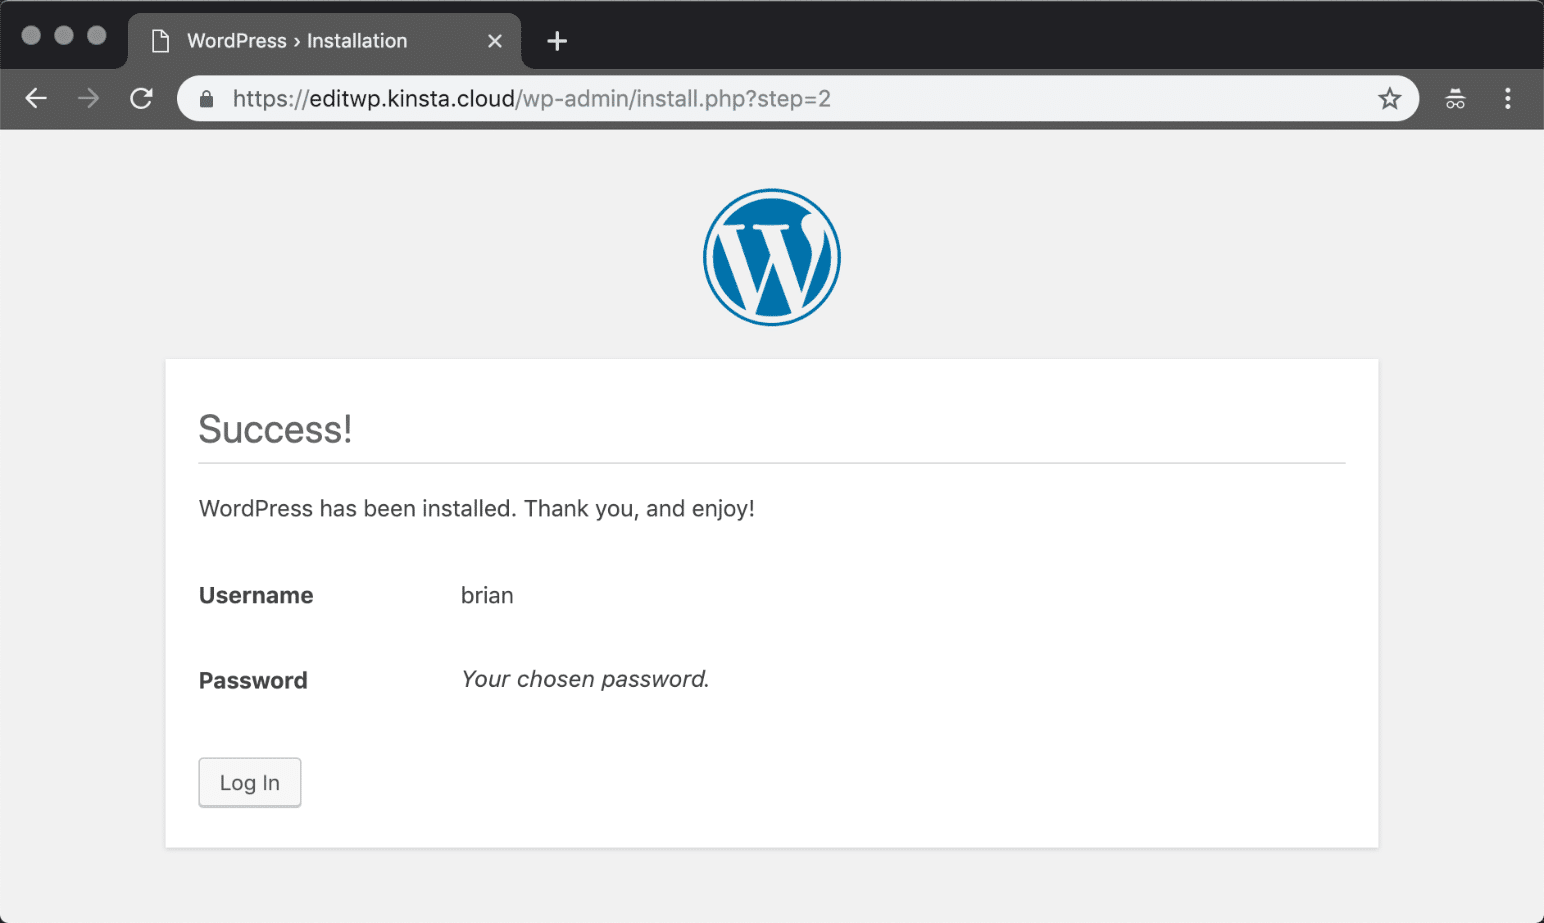 Manuelt installer WordPress-succes